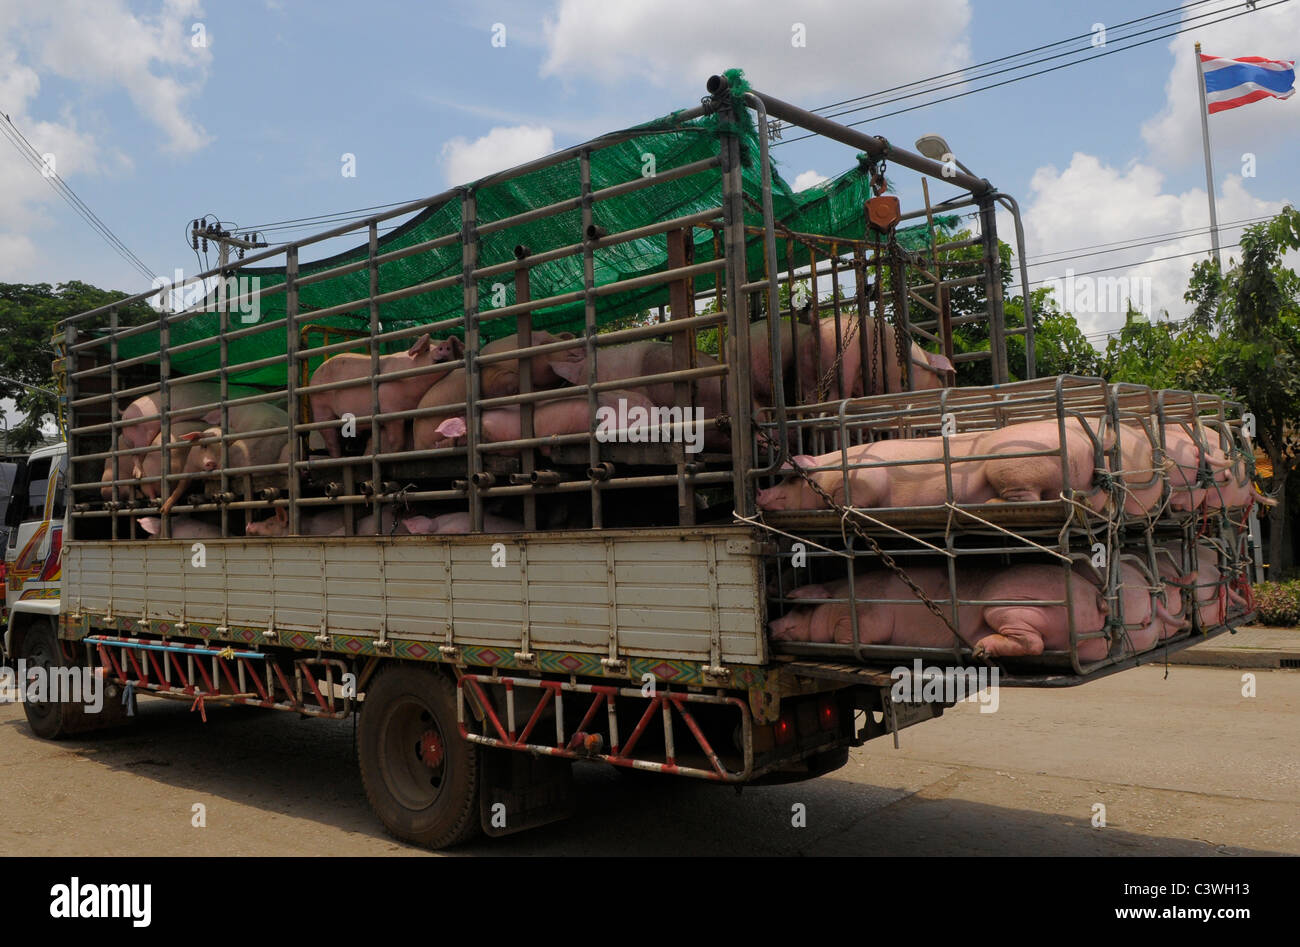 Cruelty to animals , pigs in transit at thai-cambodian border between Aranyaprathet, Thailand and Poipet ,Cambodia - Stock Image